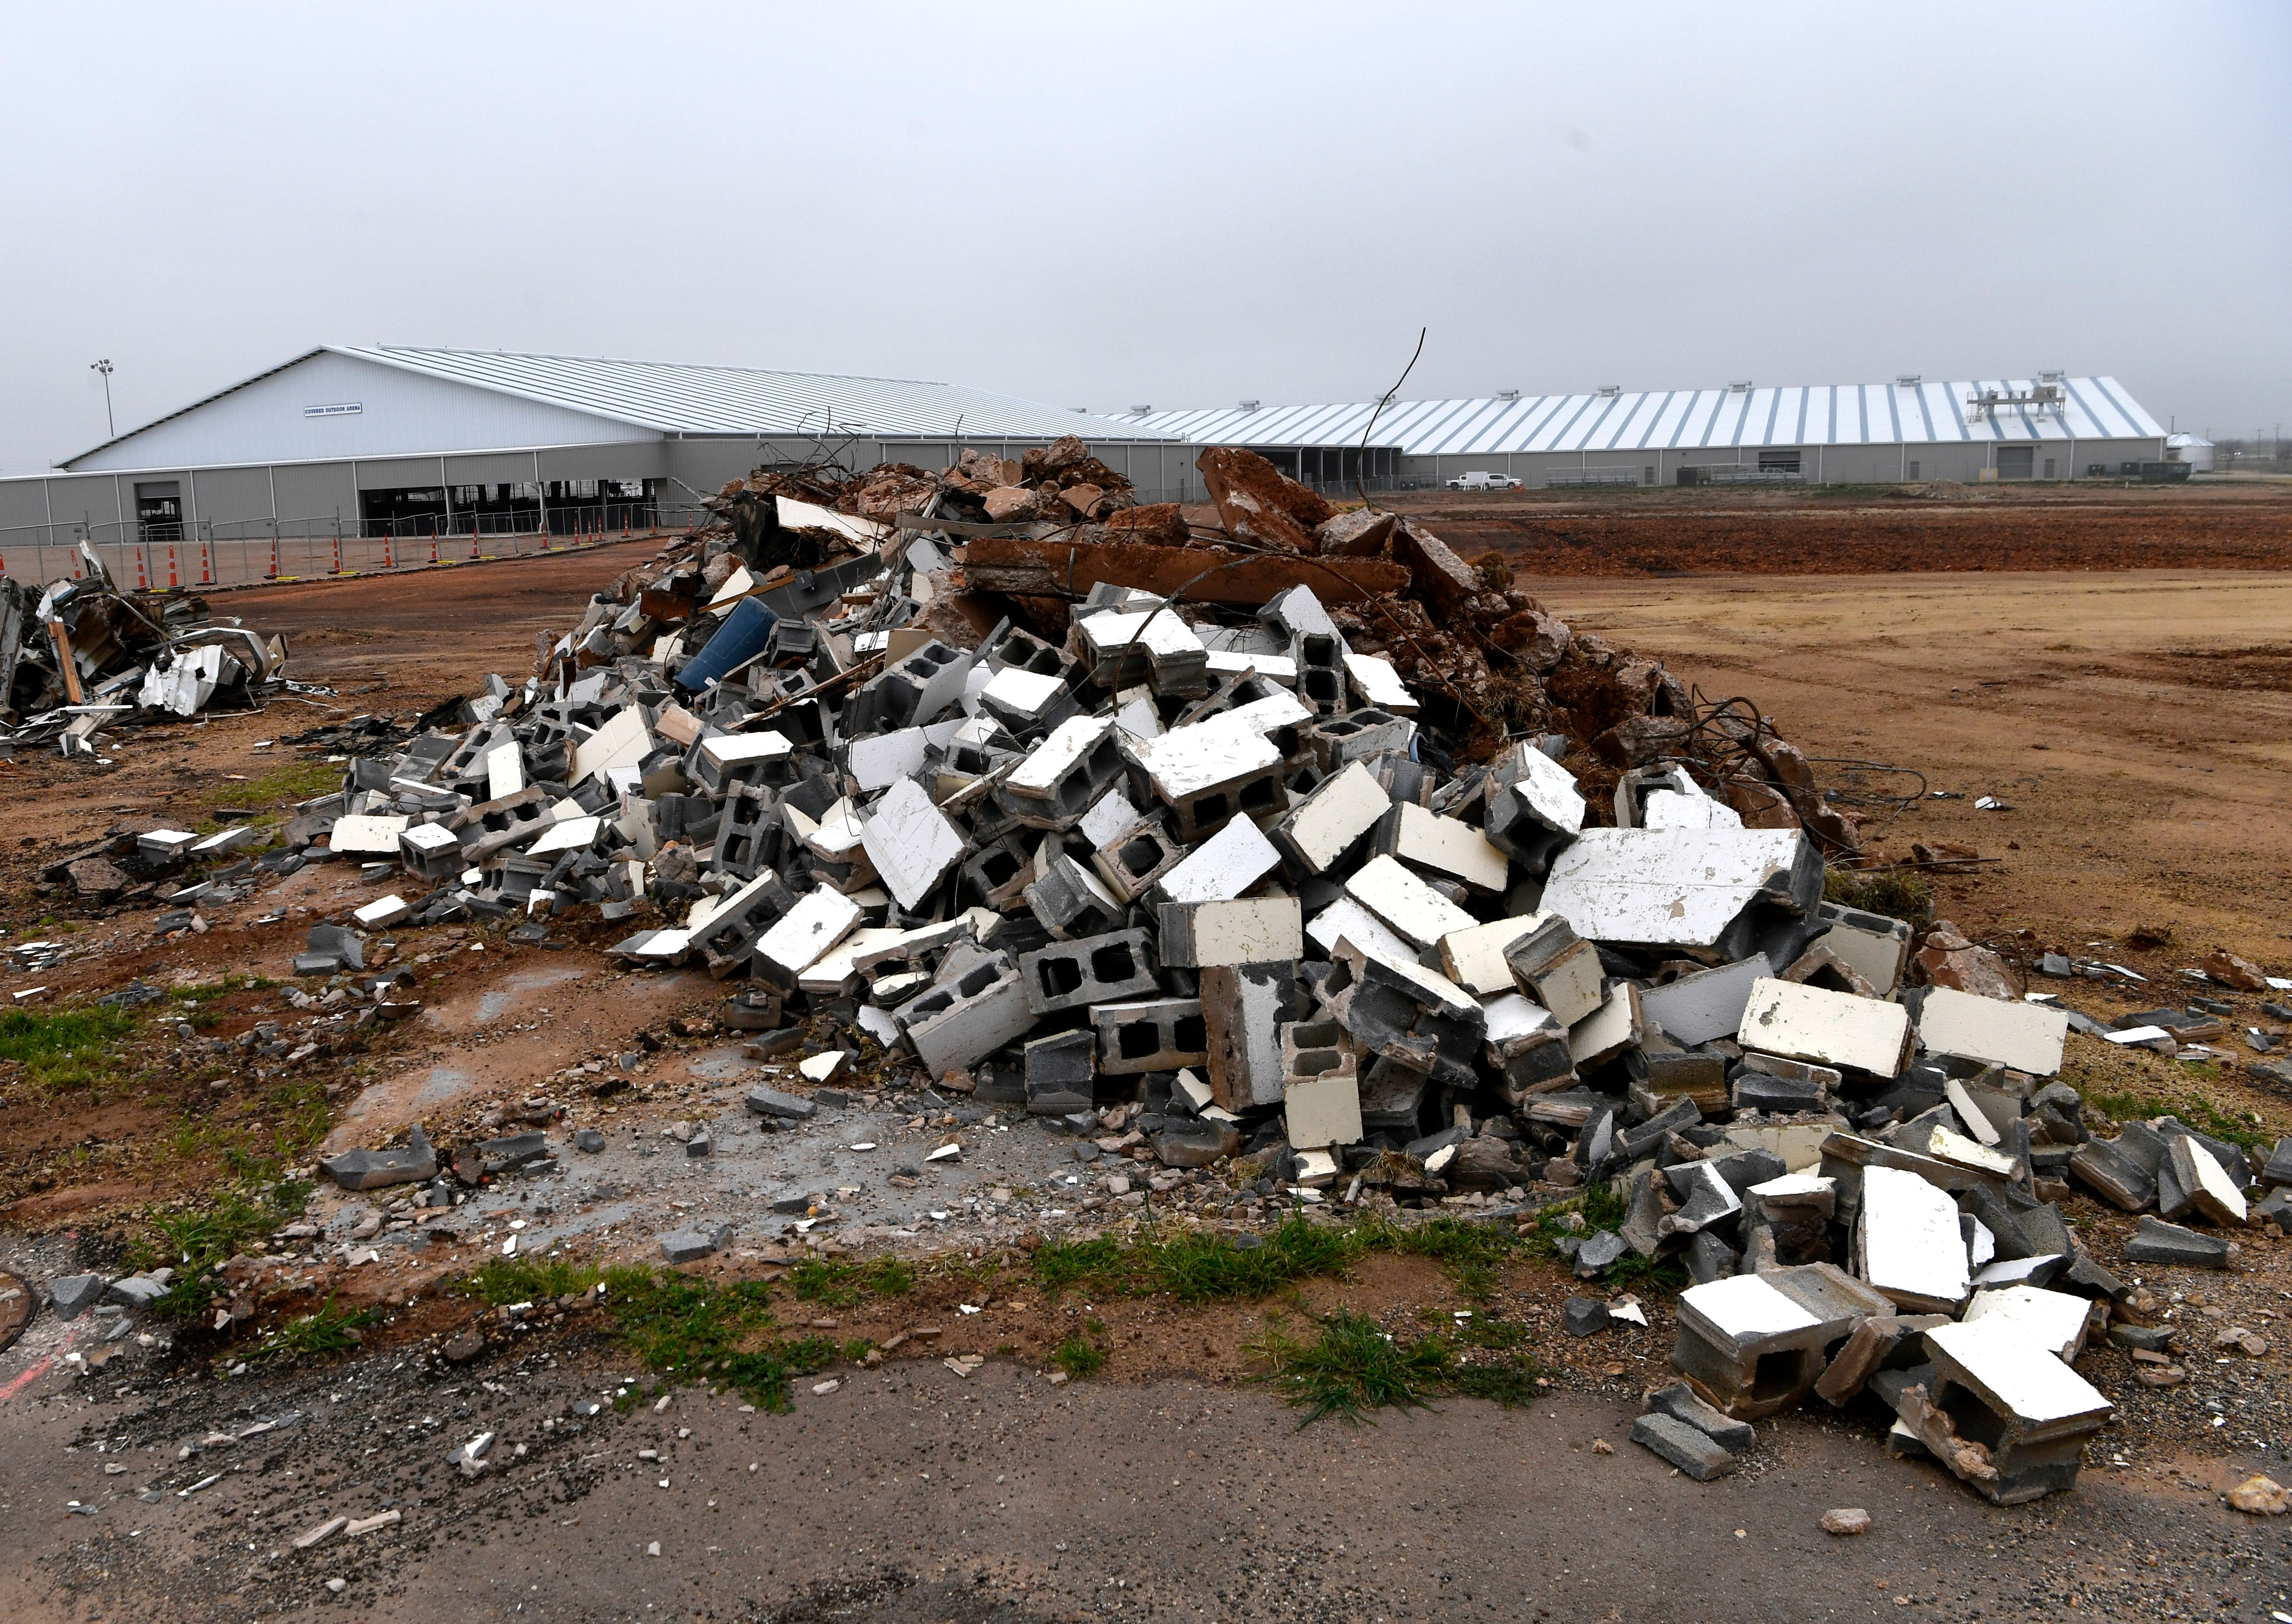 Debris is mounded on a construction site at the Taylor County Expo Center on March 12. In the background is the Covered Arena and the new Livestock Barn, which opened in 2018.